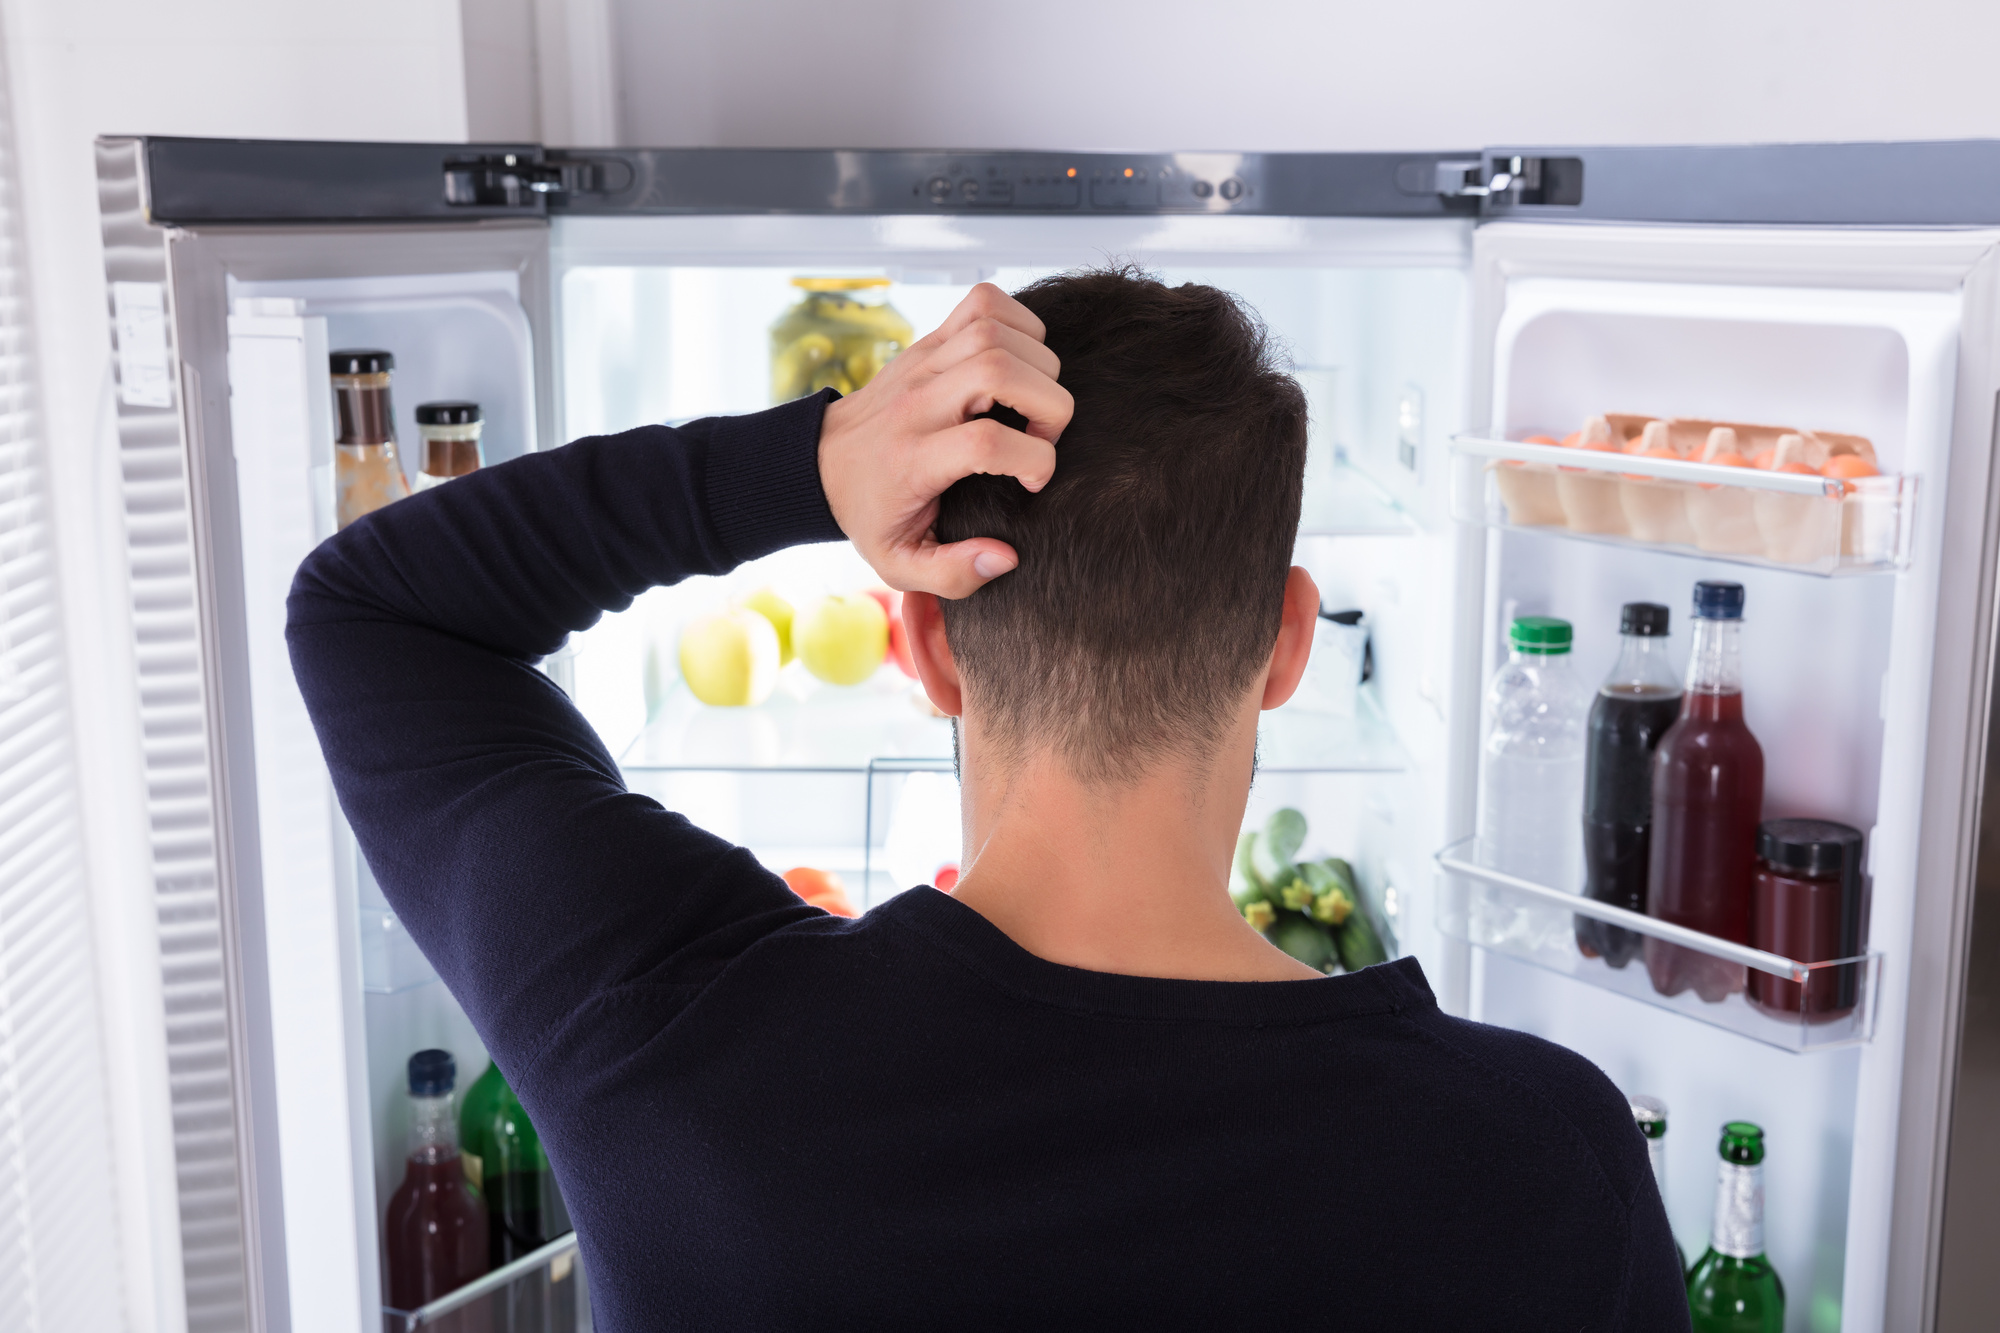 Repair vs Replace: What Should You Do With a Damaged Refrigerator?